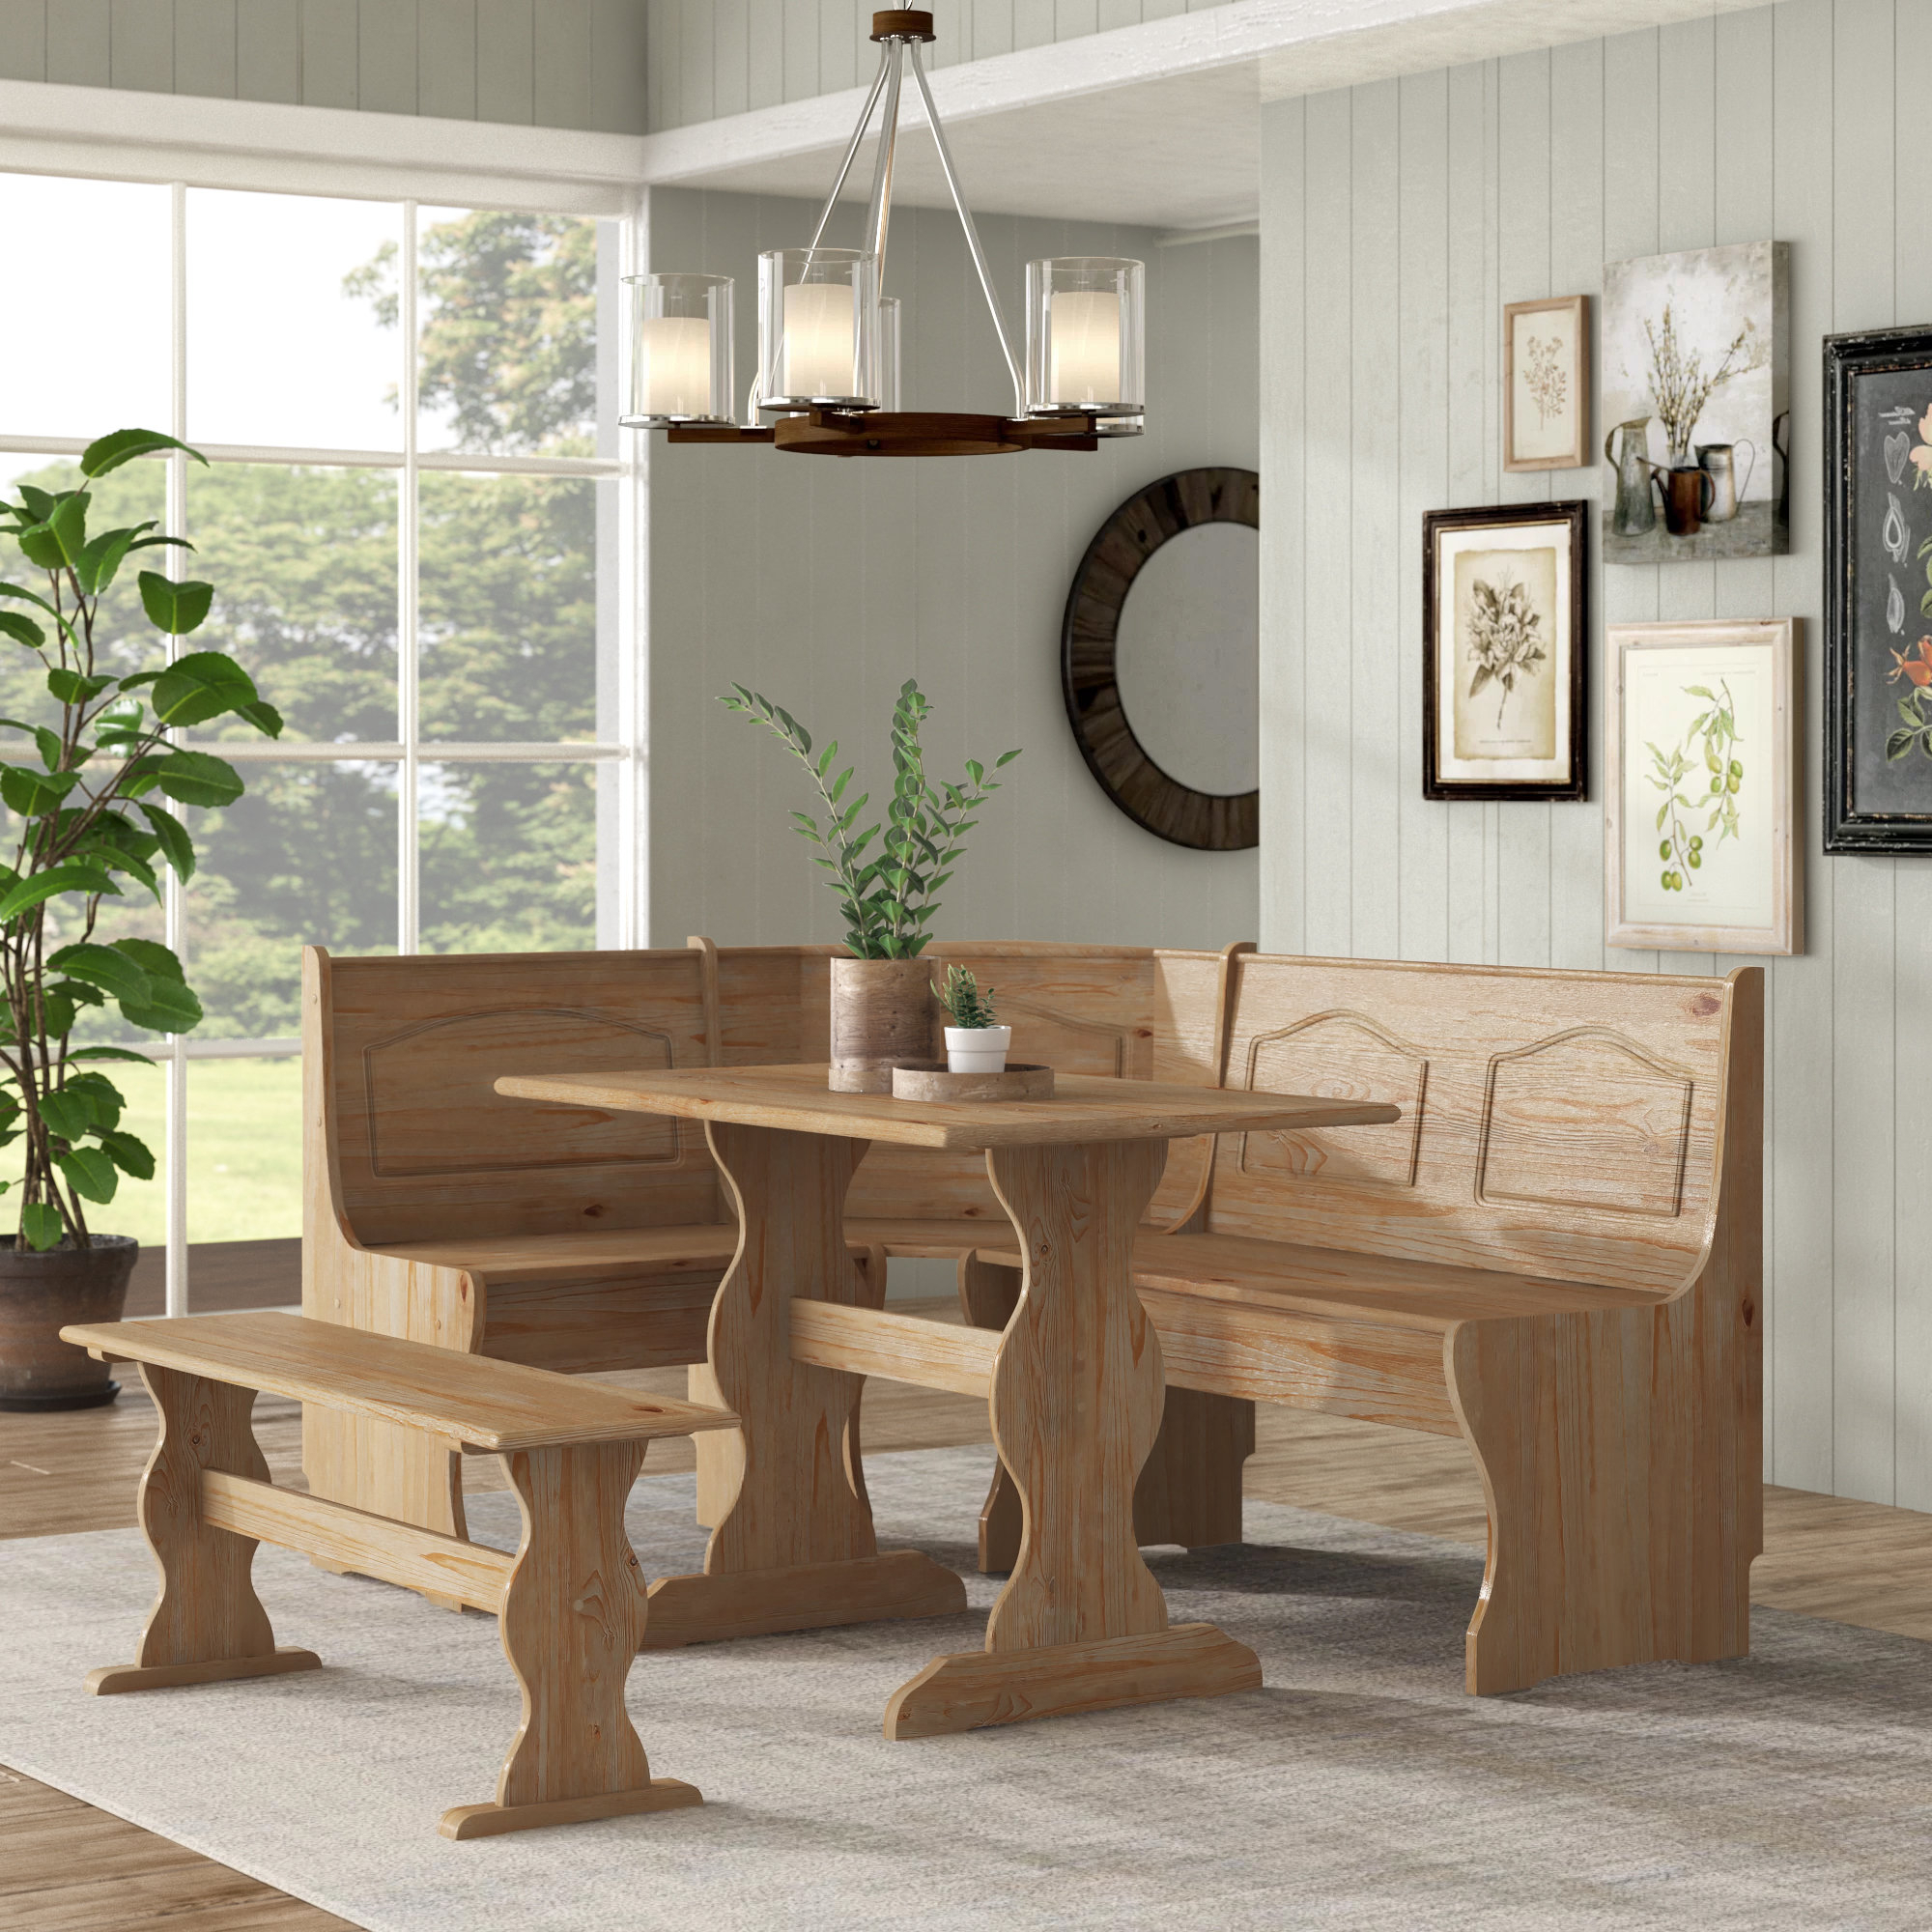 Current 3 Piece Breakfast Nook Dinning Set Intended For August Grove Padstow 3 Piece Breakfast Nook Dining Set & Reviews (View 21 of 25)